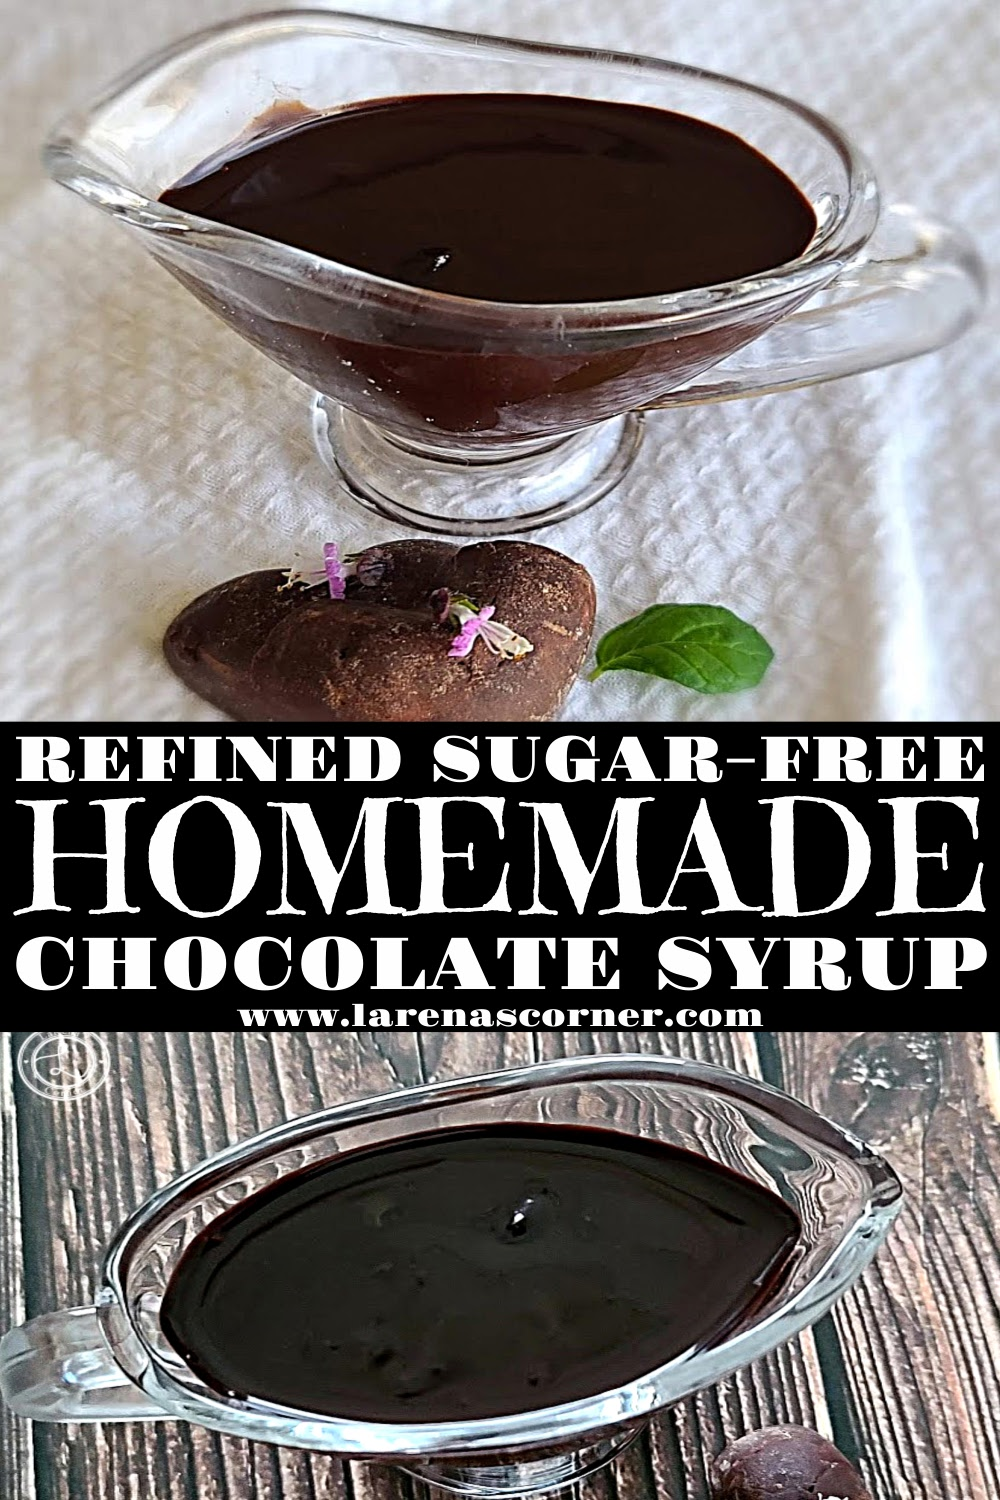 Two Pictures of Homemade Chocolate Syrup in containers